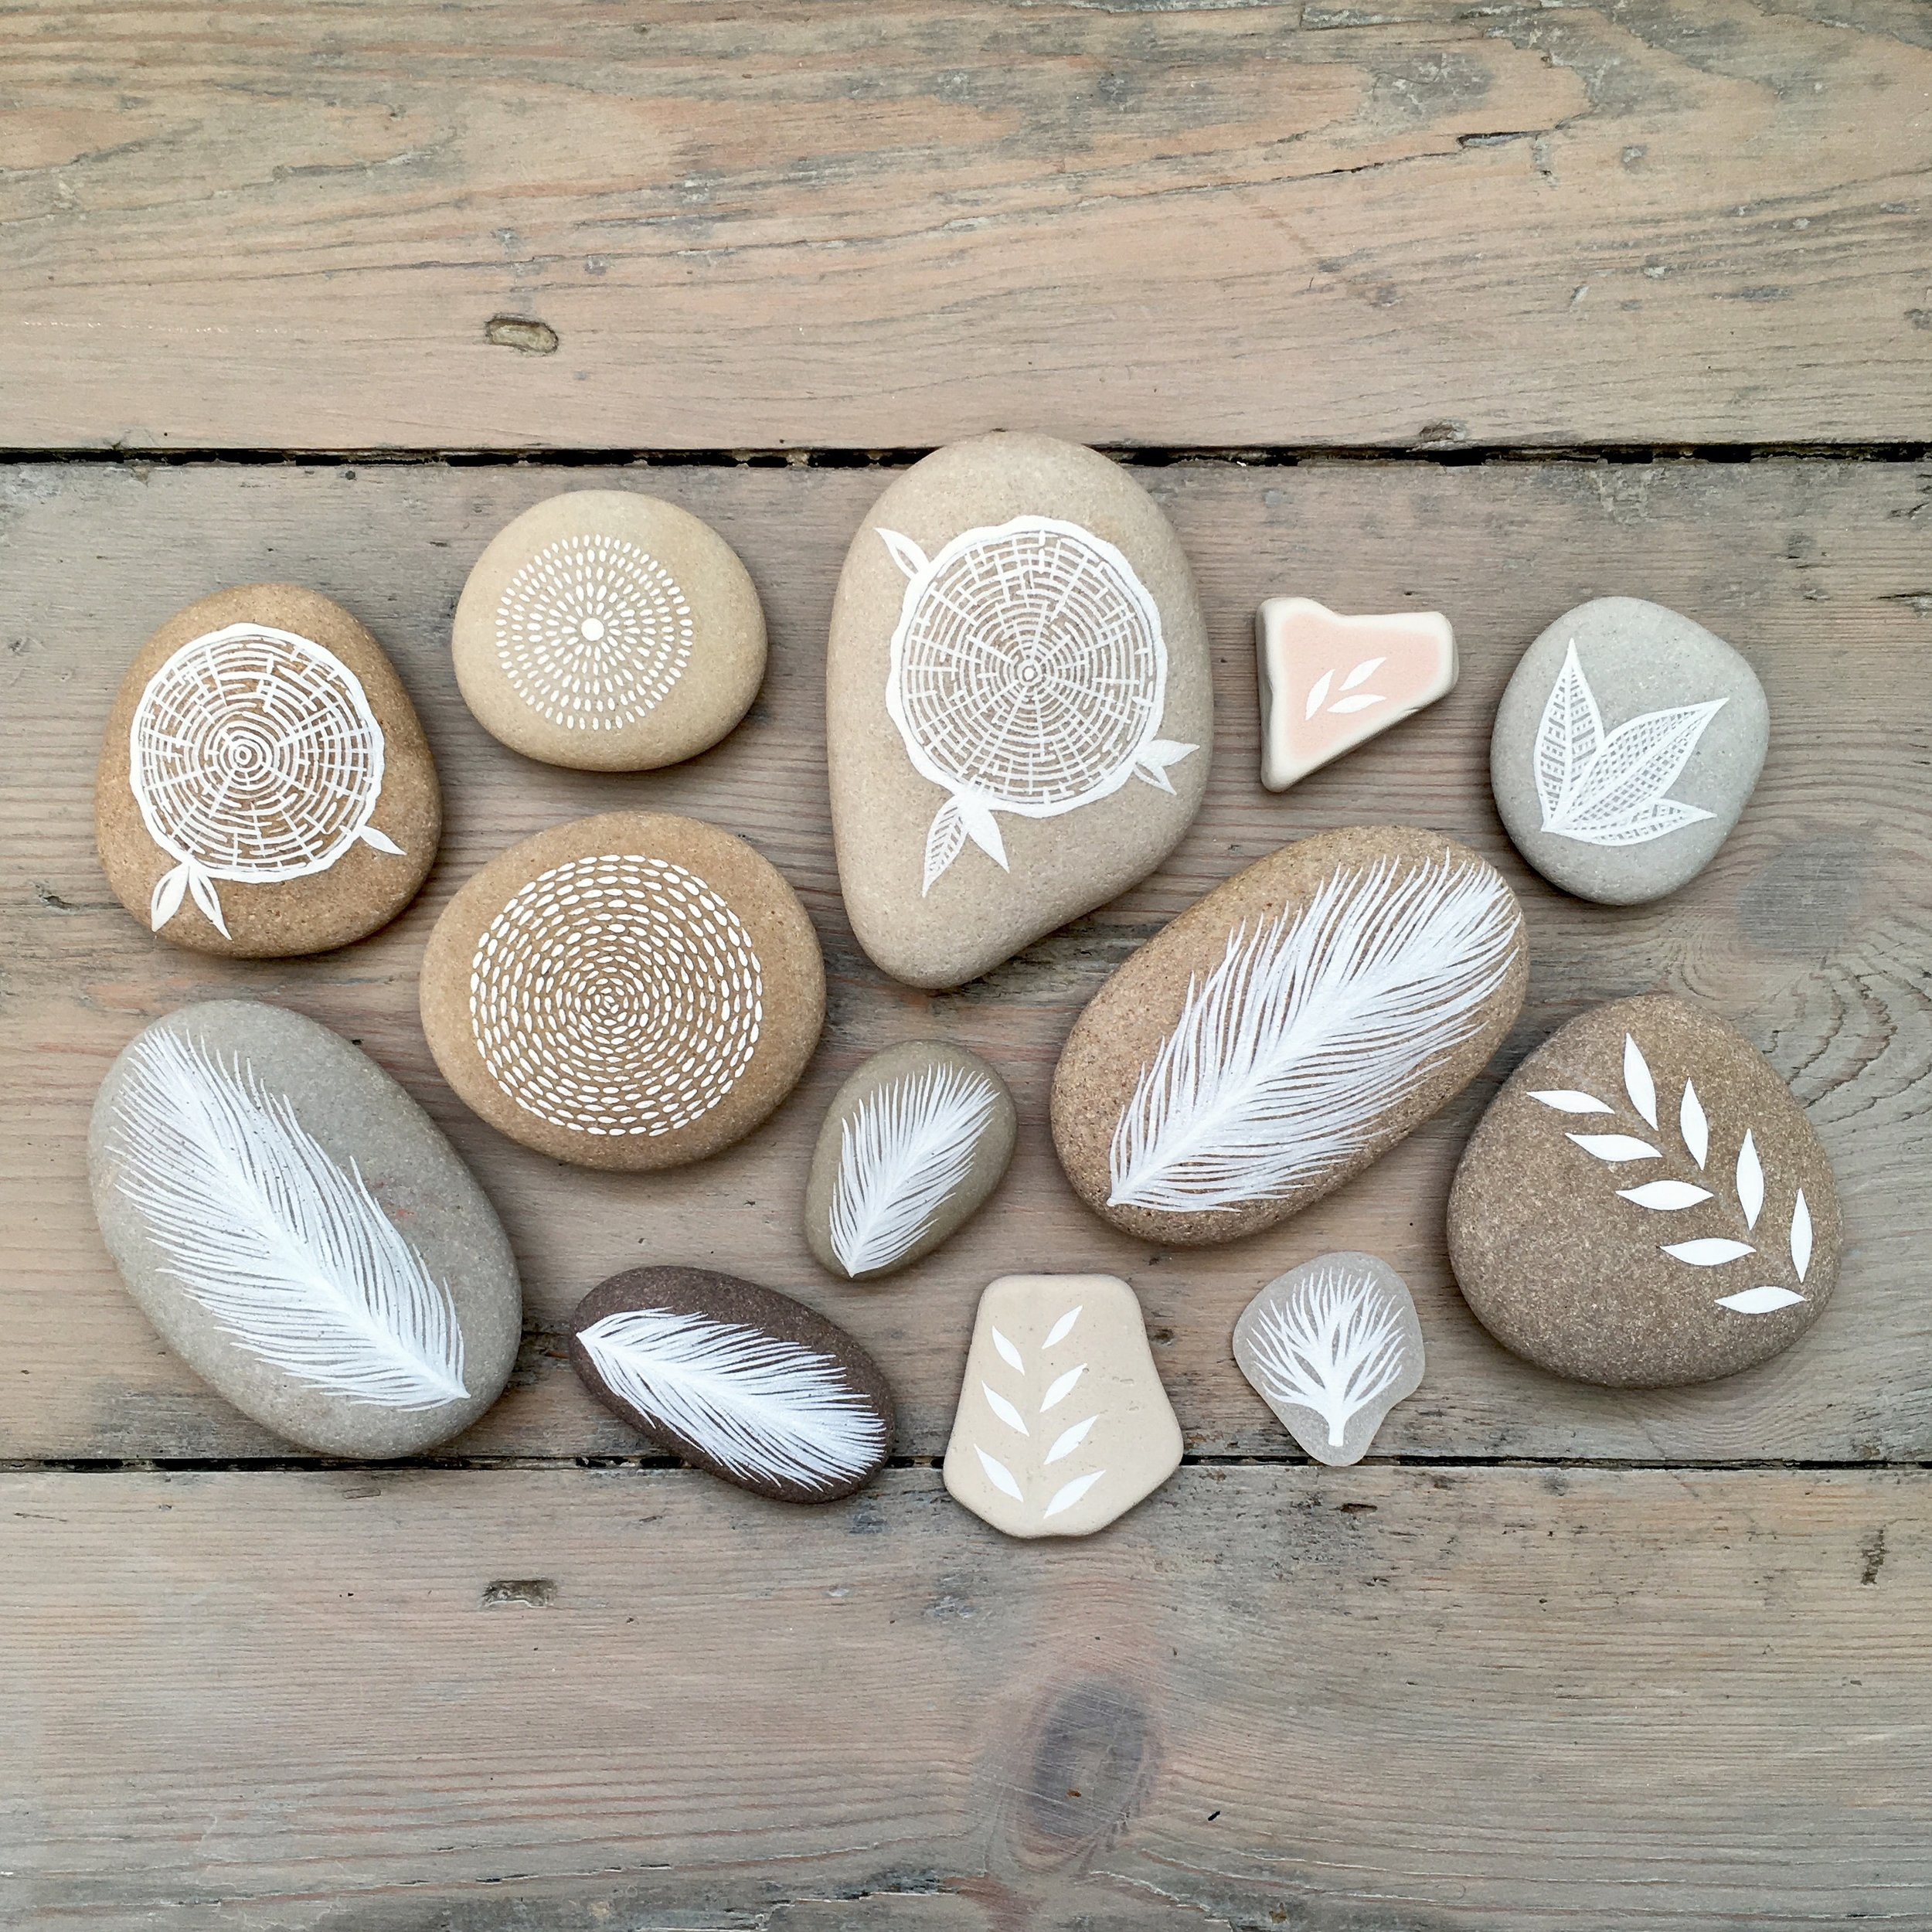 Painted Stones, Sea Glass & Beach Pottery